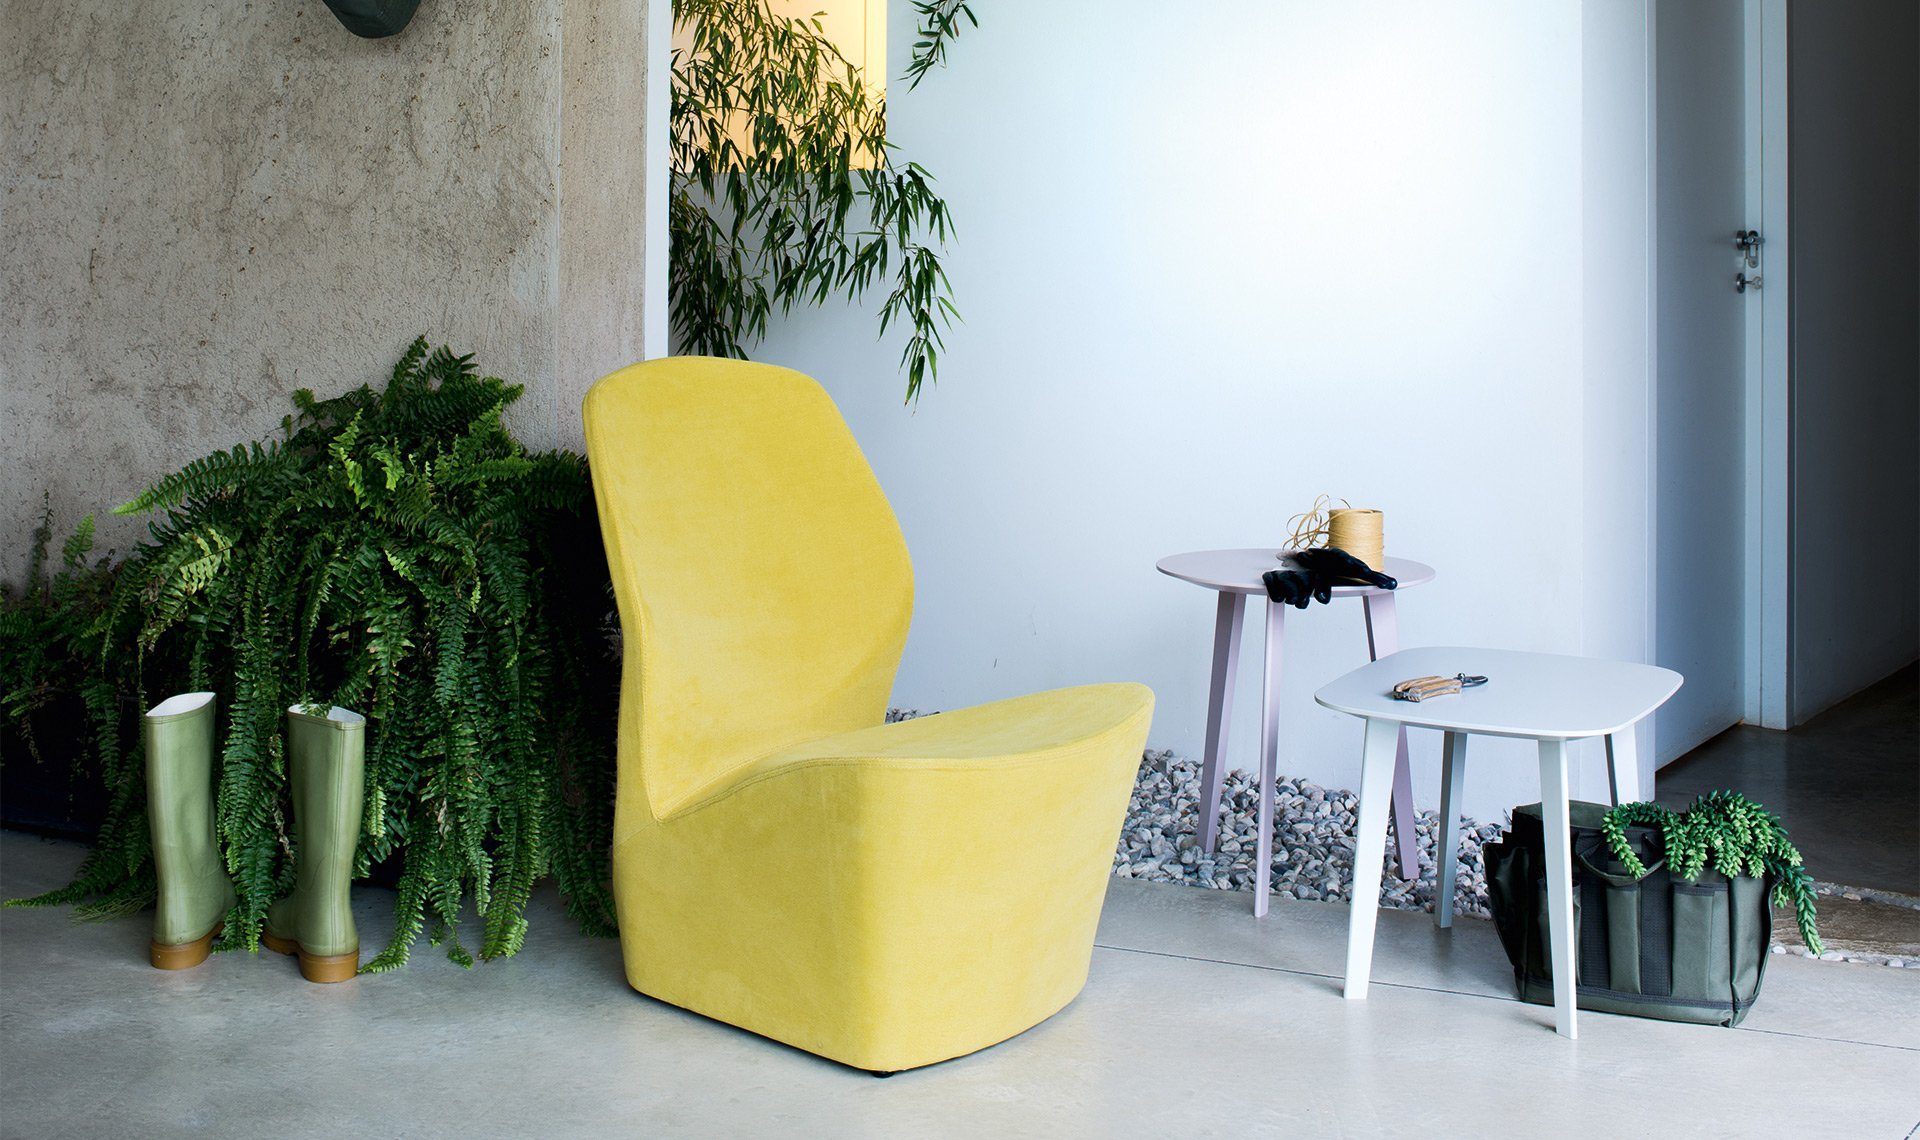 Odette is a padded armchair with removable cover. It forms a single shape where the seat and back are both one and separate. This feature piece also evokes the silhouette of a swan